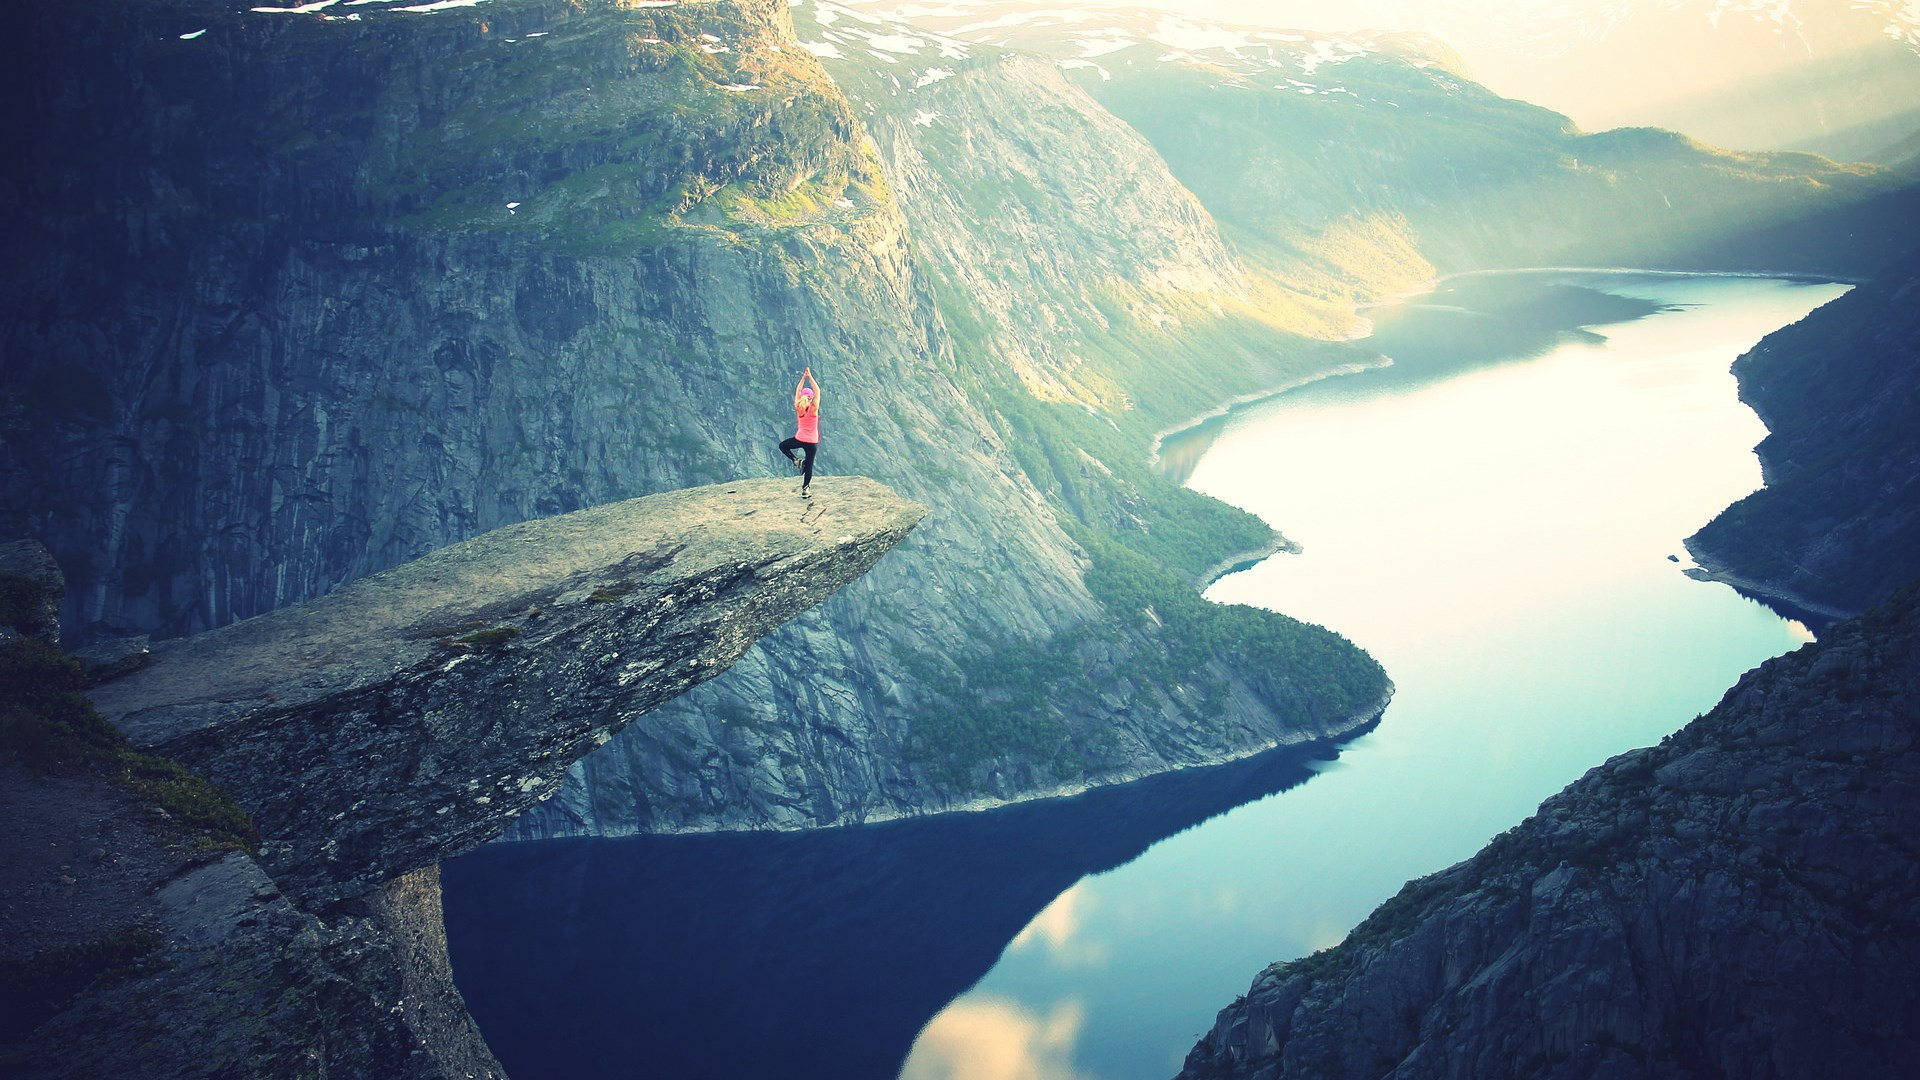 Amazing-Earth-Trolltunga-HD-1920x1080-Need-iPhone-S-Plus-Background-for-IPhoneS-wallpaper-wp3402296